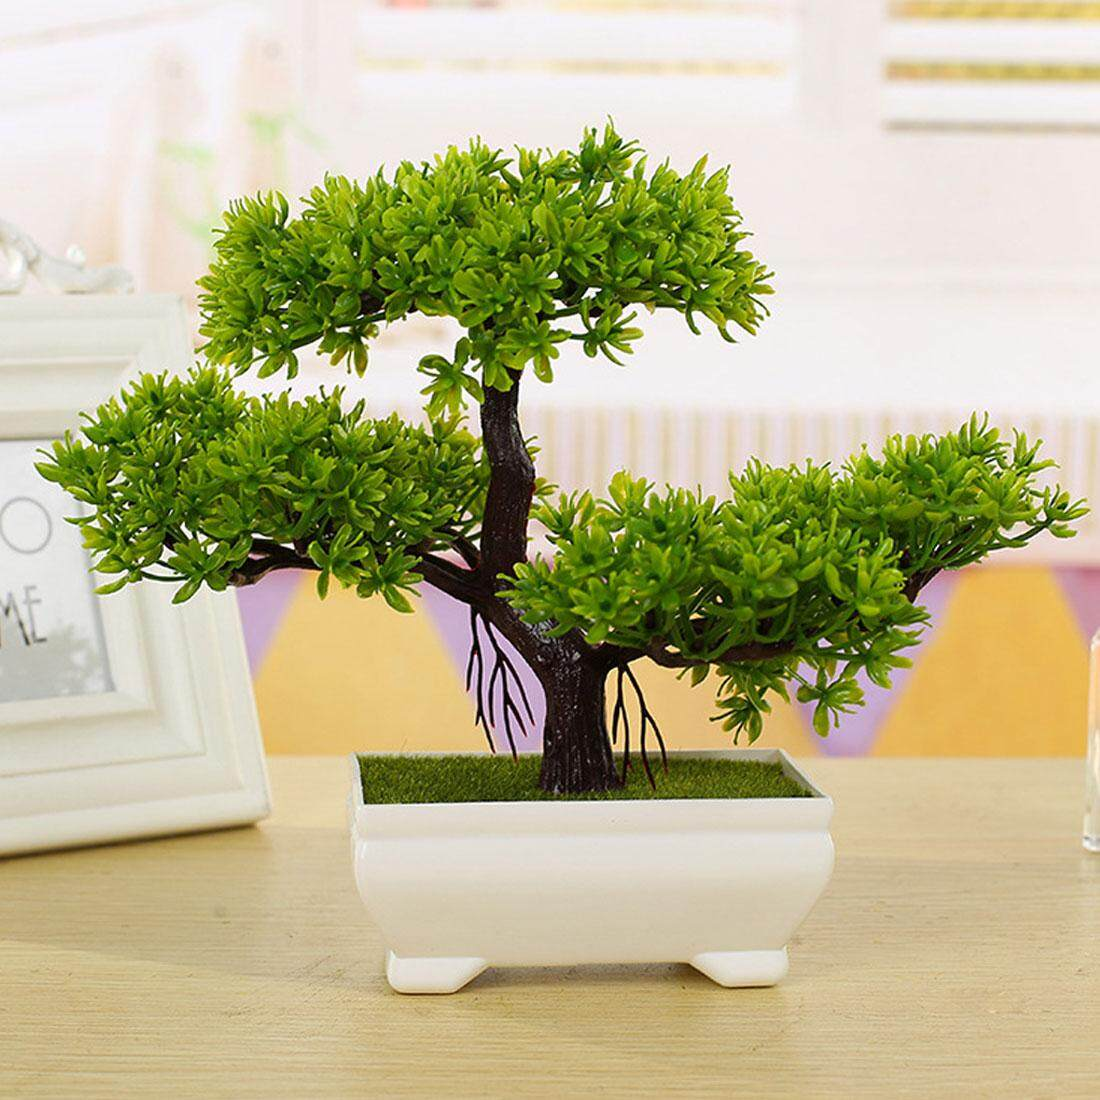 Mini Trigeminal Welcoming Pine Small Potted Artificial Flower Plants Small Bonsai For Home Festival Decoration Intl